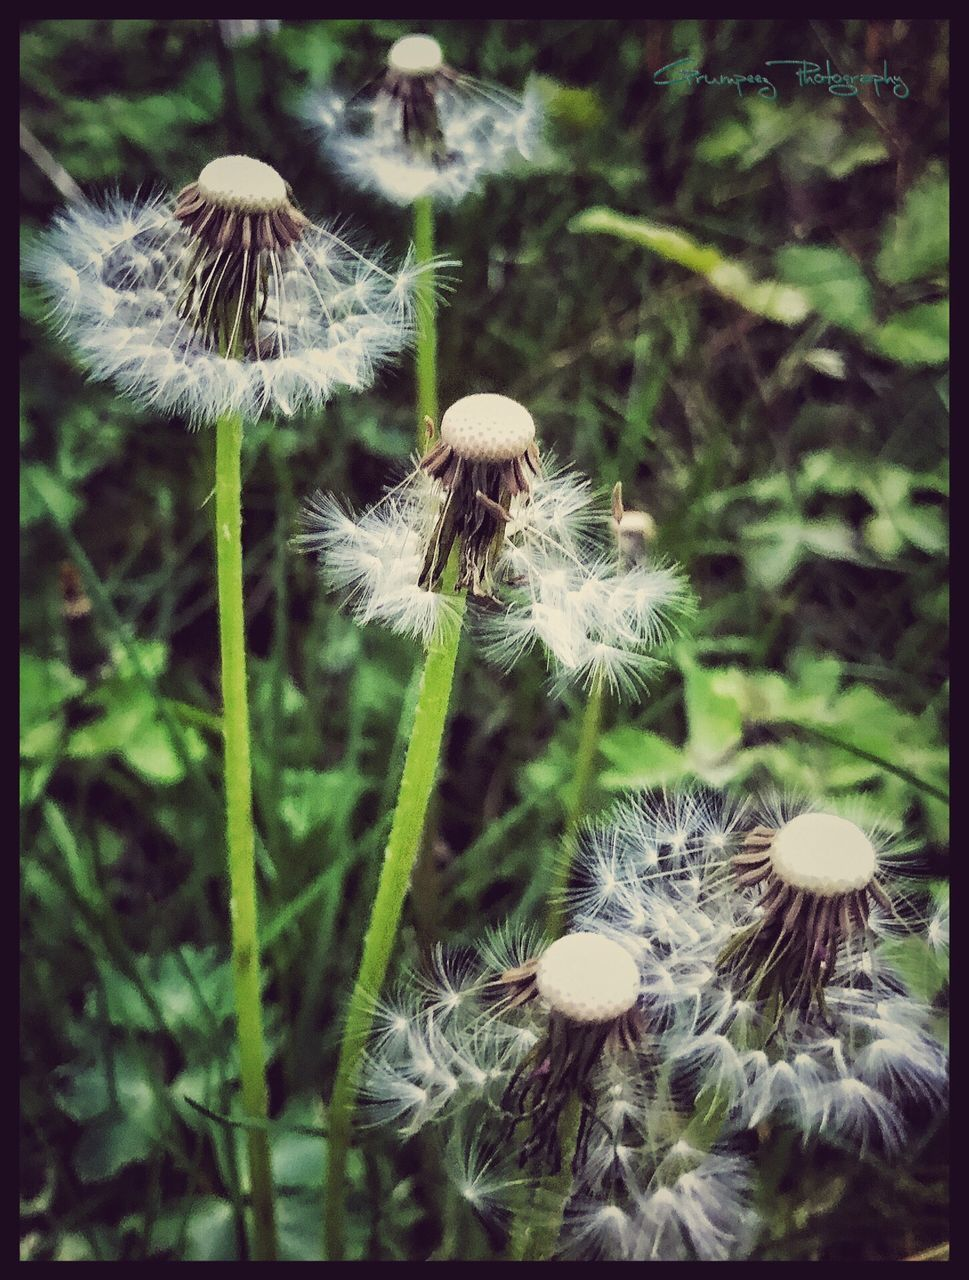 fragility, growth, nature, dandelion, flower, mushroom, close-up, uncultivated, freshness, beauty in nature, plant, outdoors, no people, focus on foreground, fungus, day, flower head, toadstool, fly agaric